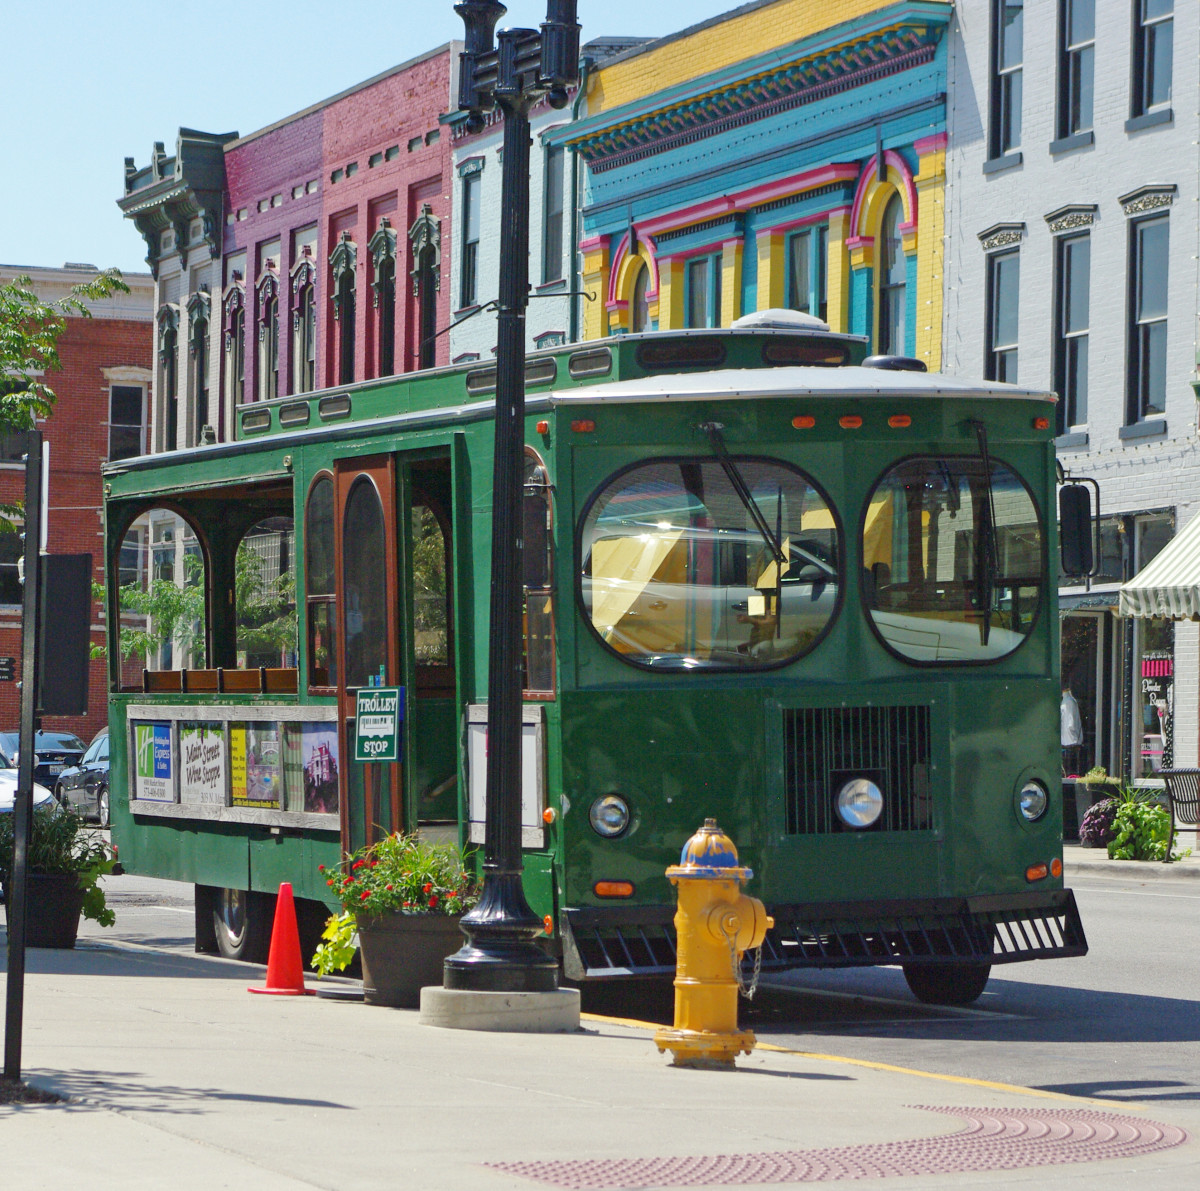 Hannibal Trolley parked on Main Street